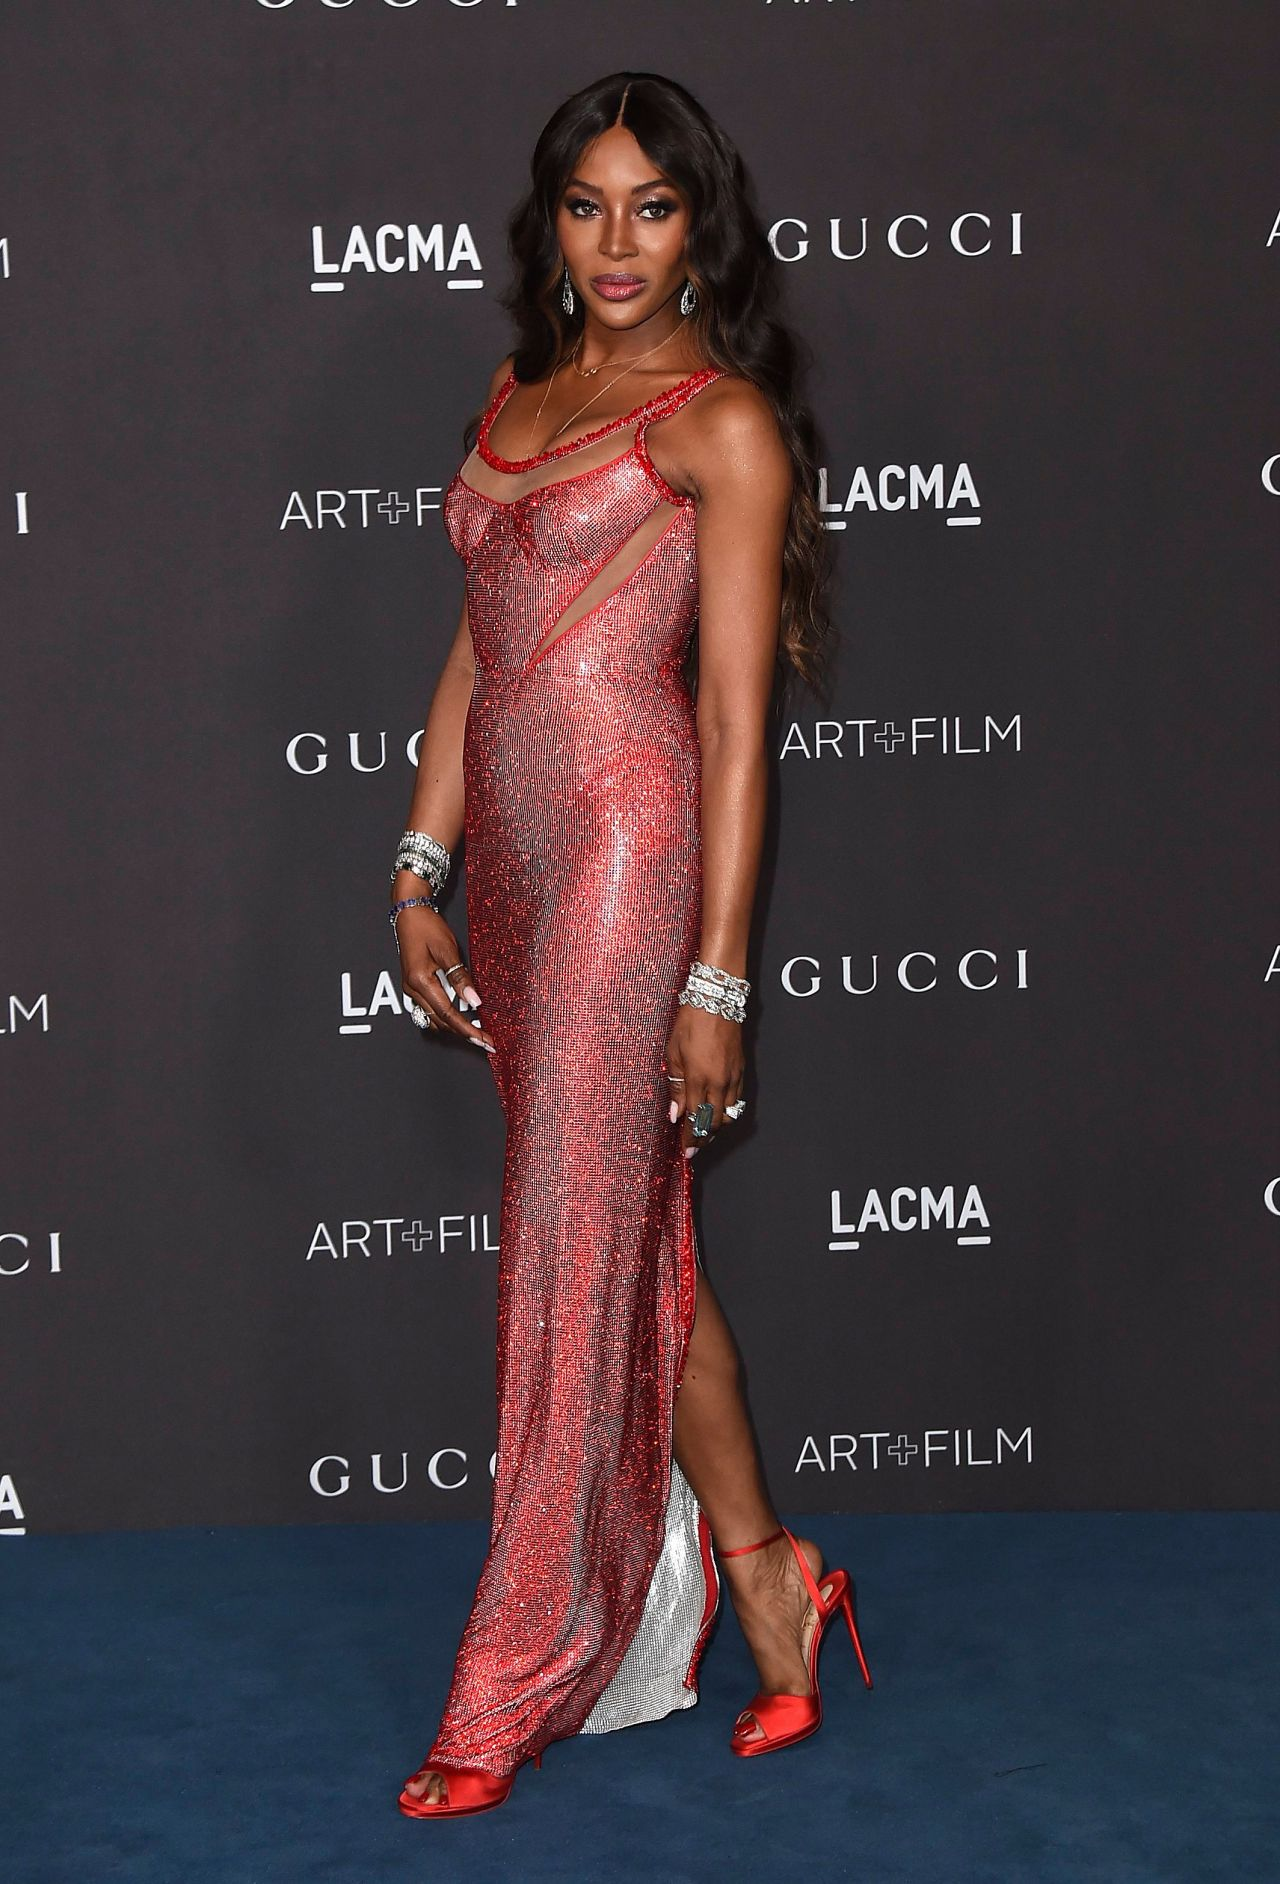 naomi-campbell-in-gucci-2019-lacma-art-and-film-gala